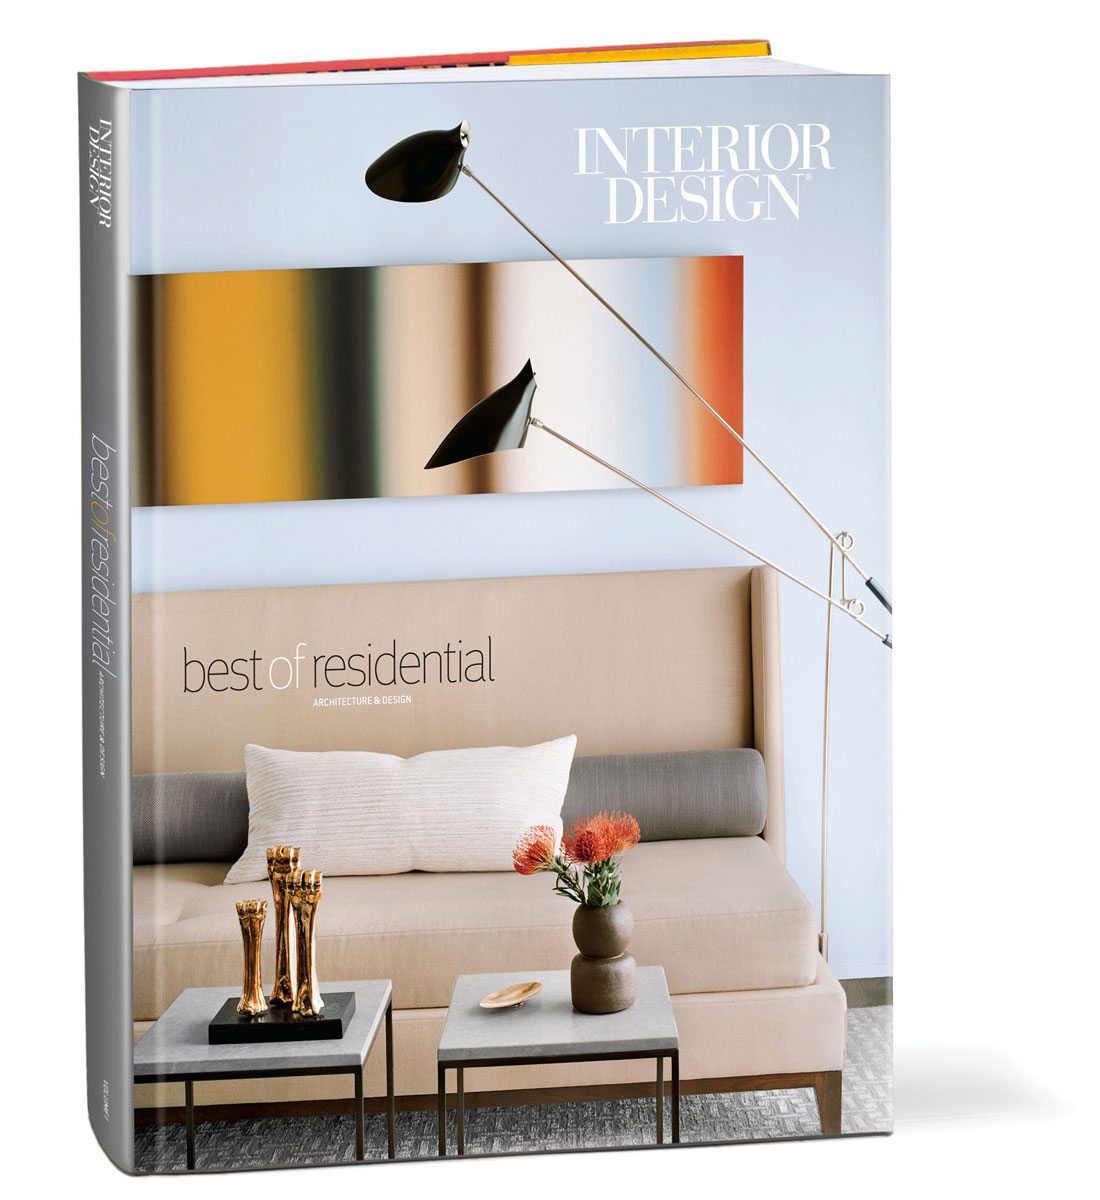 Best Interior Design Inspiration Books: Interior Design Booksrh:interiordesign.net,Design